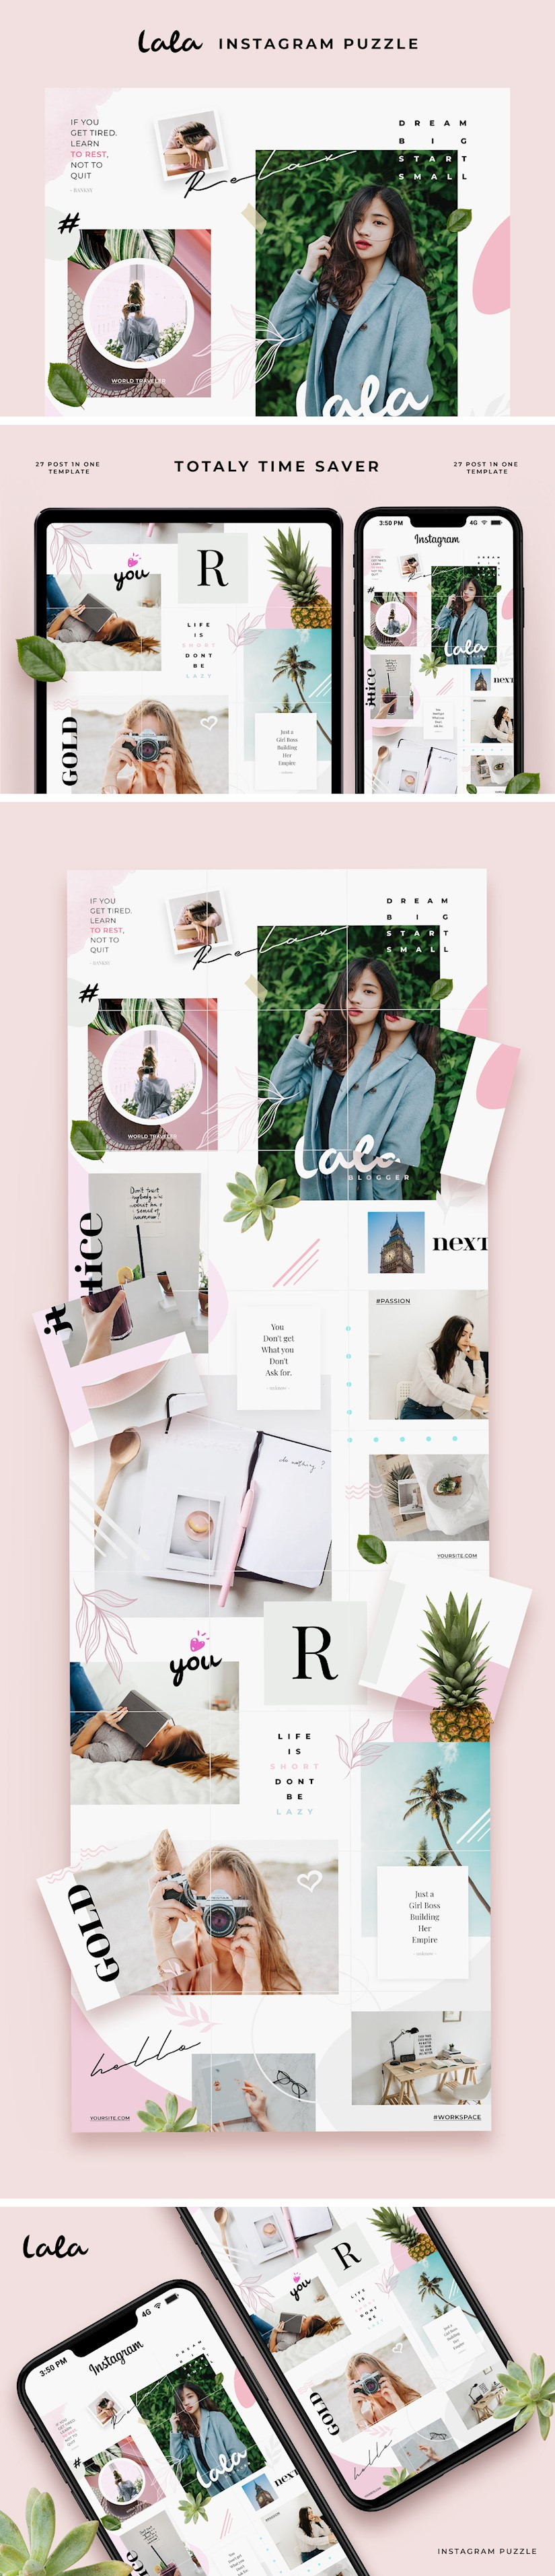 lala puzzle instagram templates